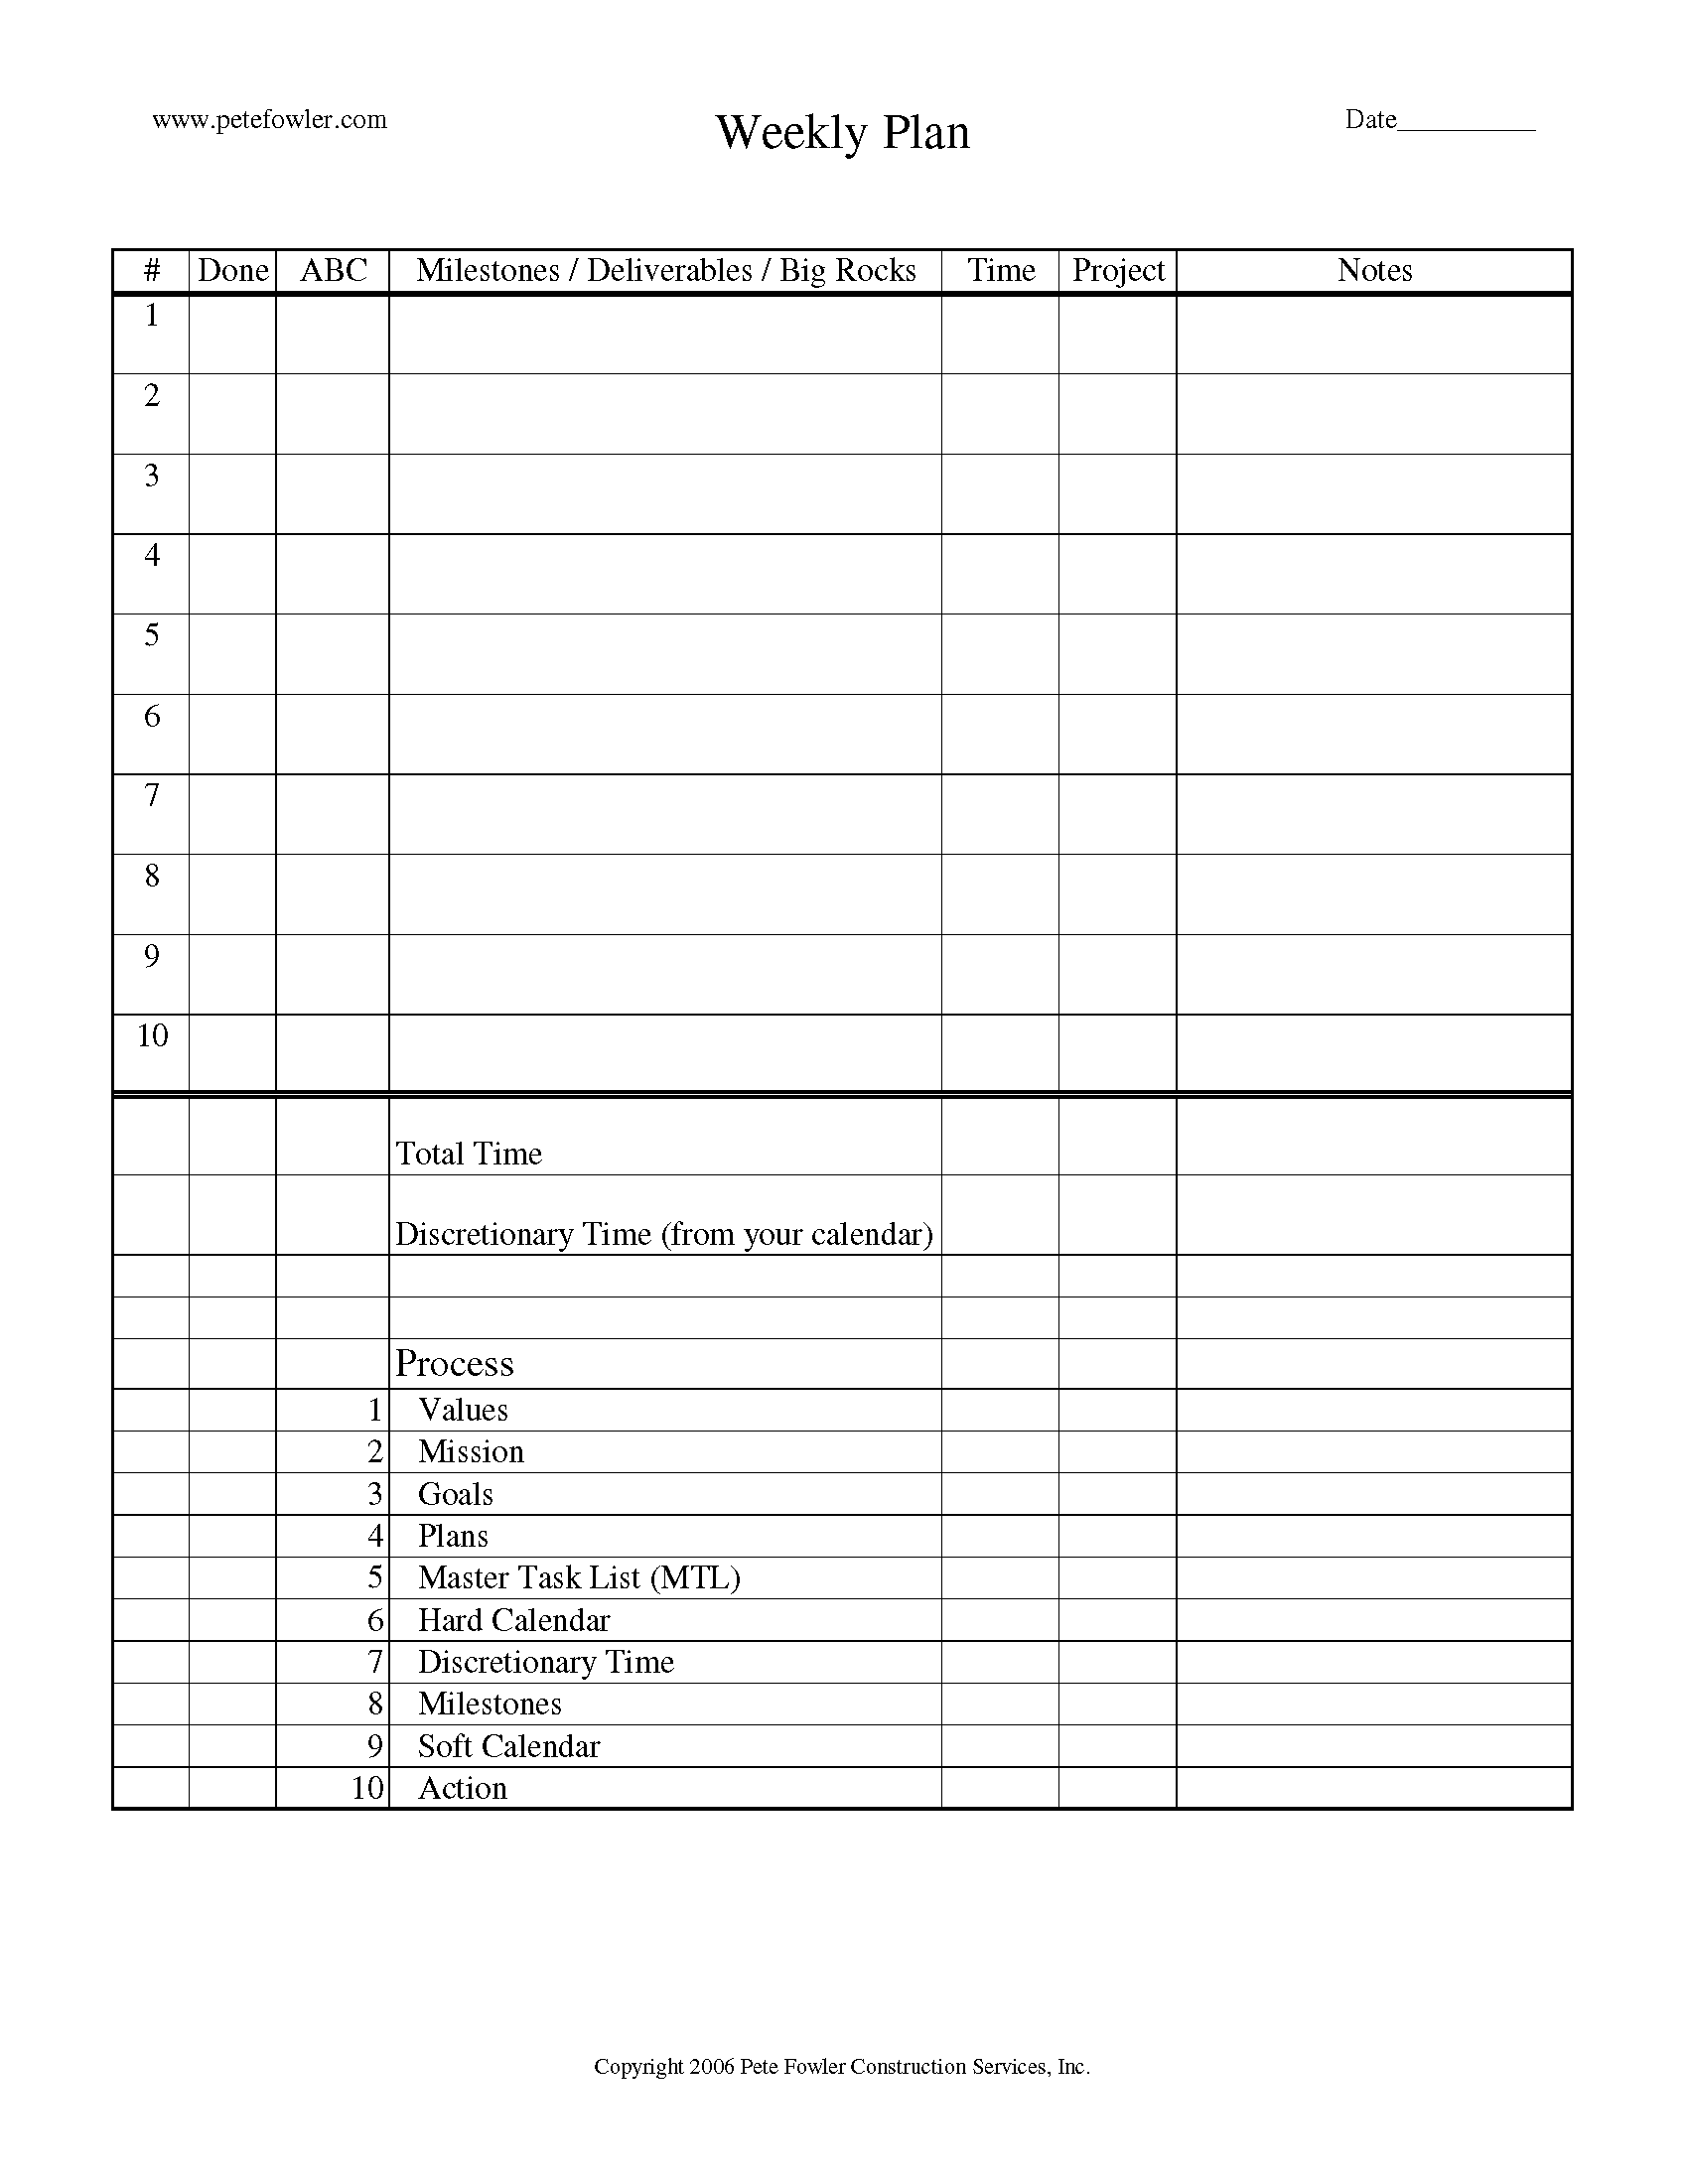 Weekly_Planning_Forms_08-01-21_B_Page_1.png